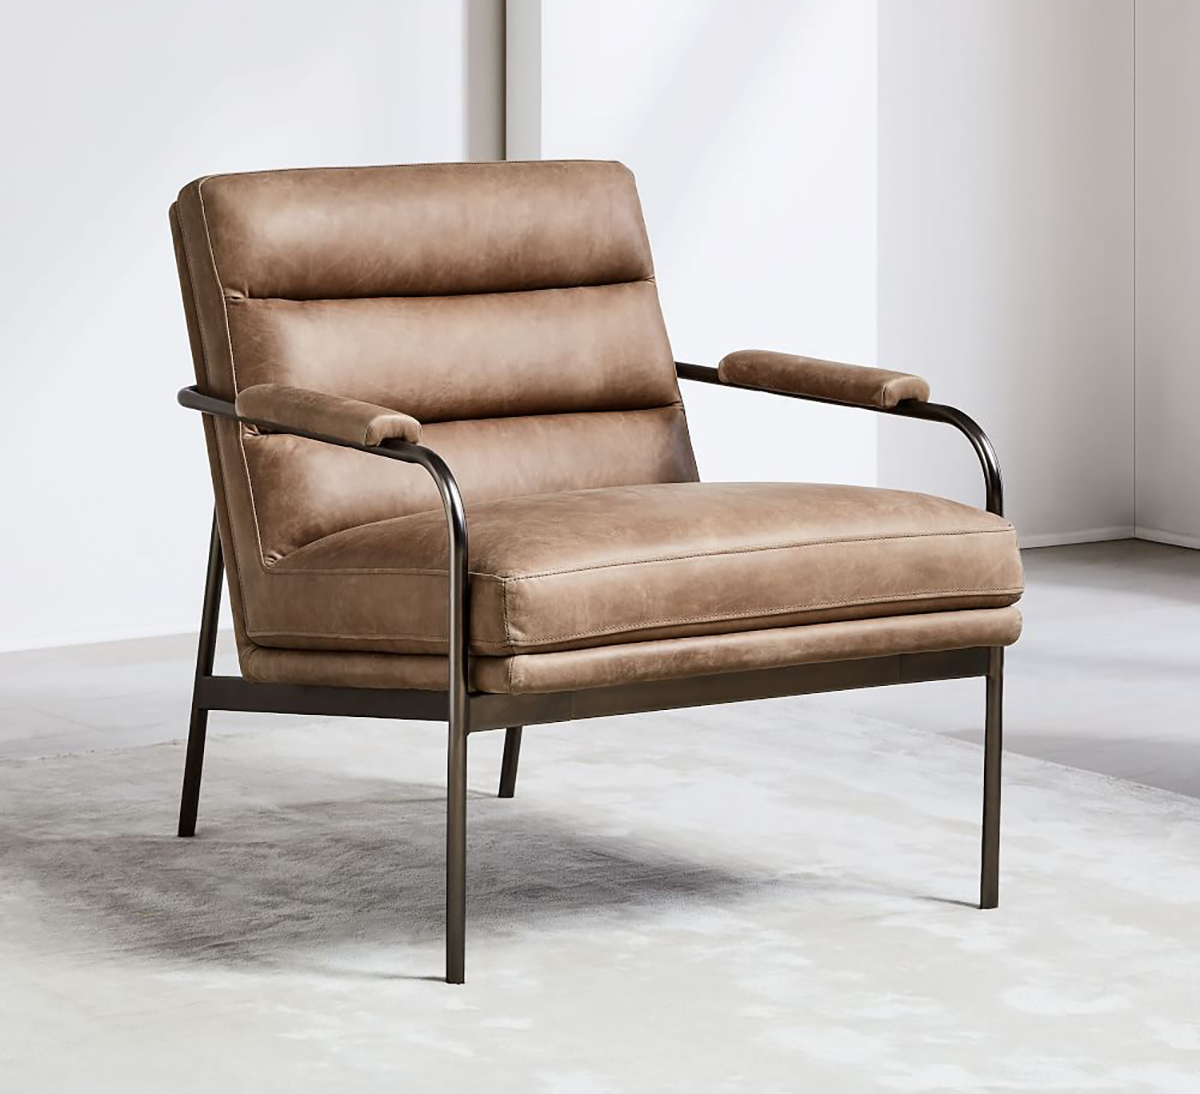 Score 300 Off This Handsome Leather Chair Living room